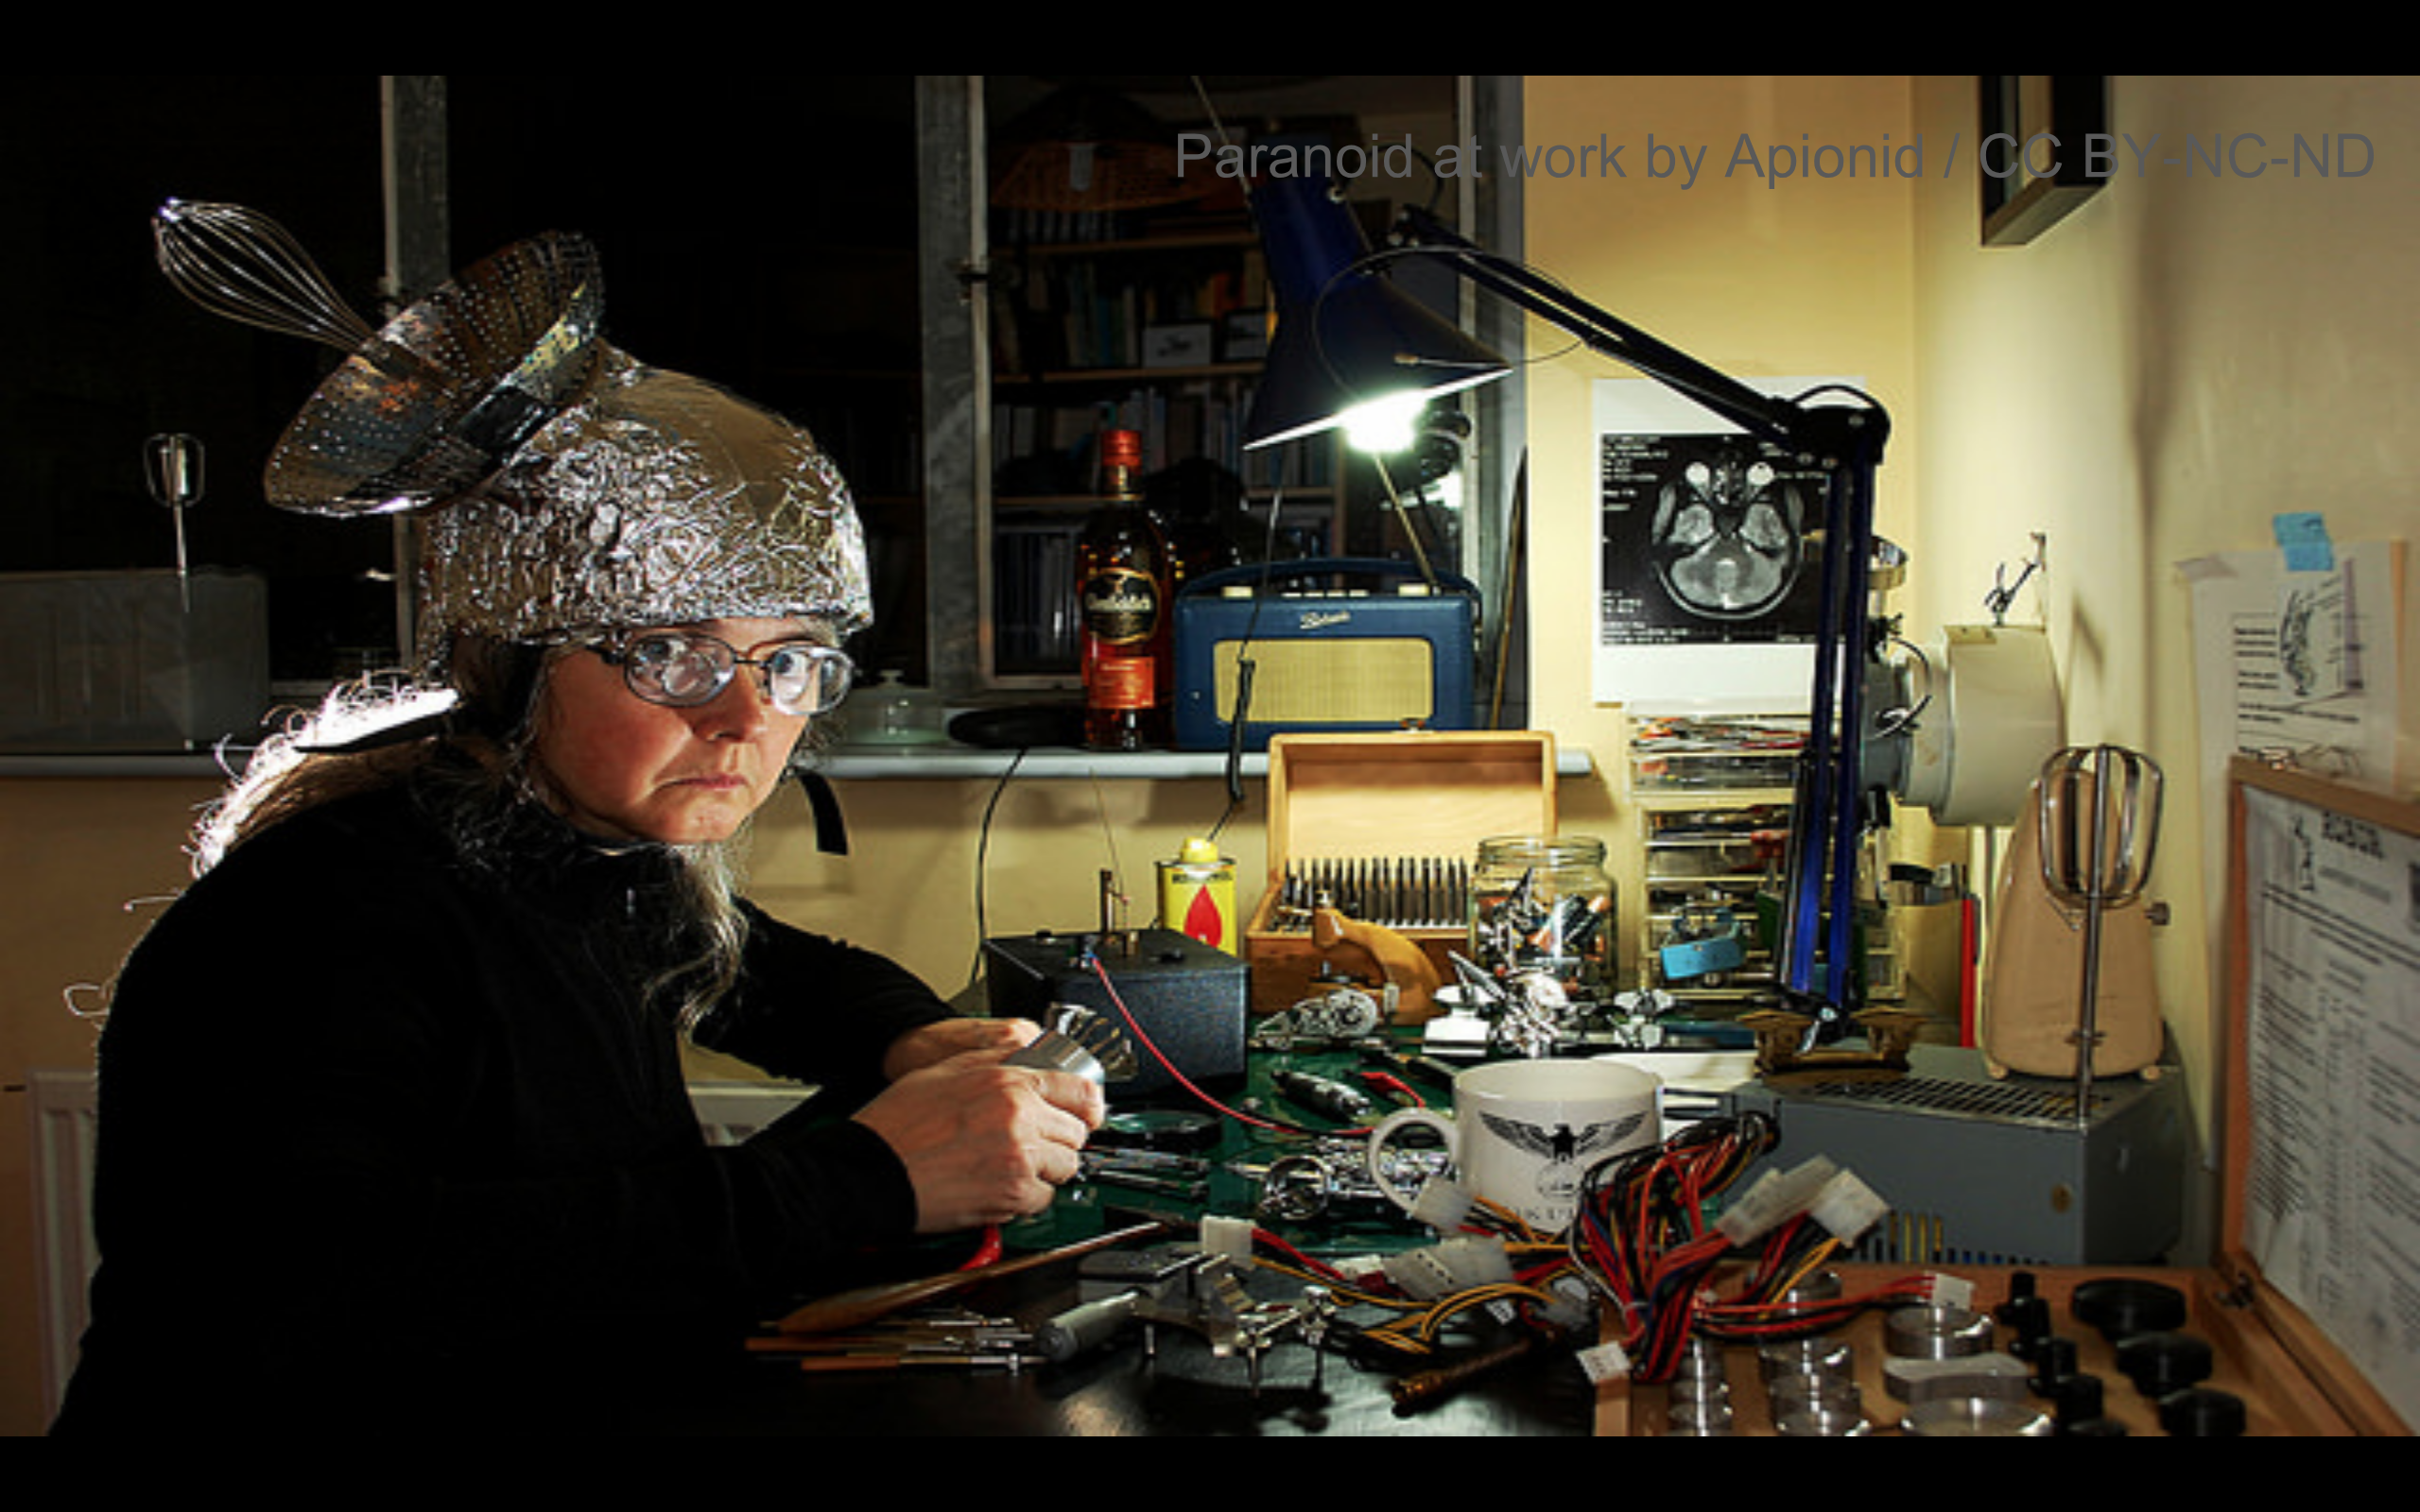 Person wearing a tin foil hat while wiring equipment